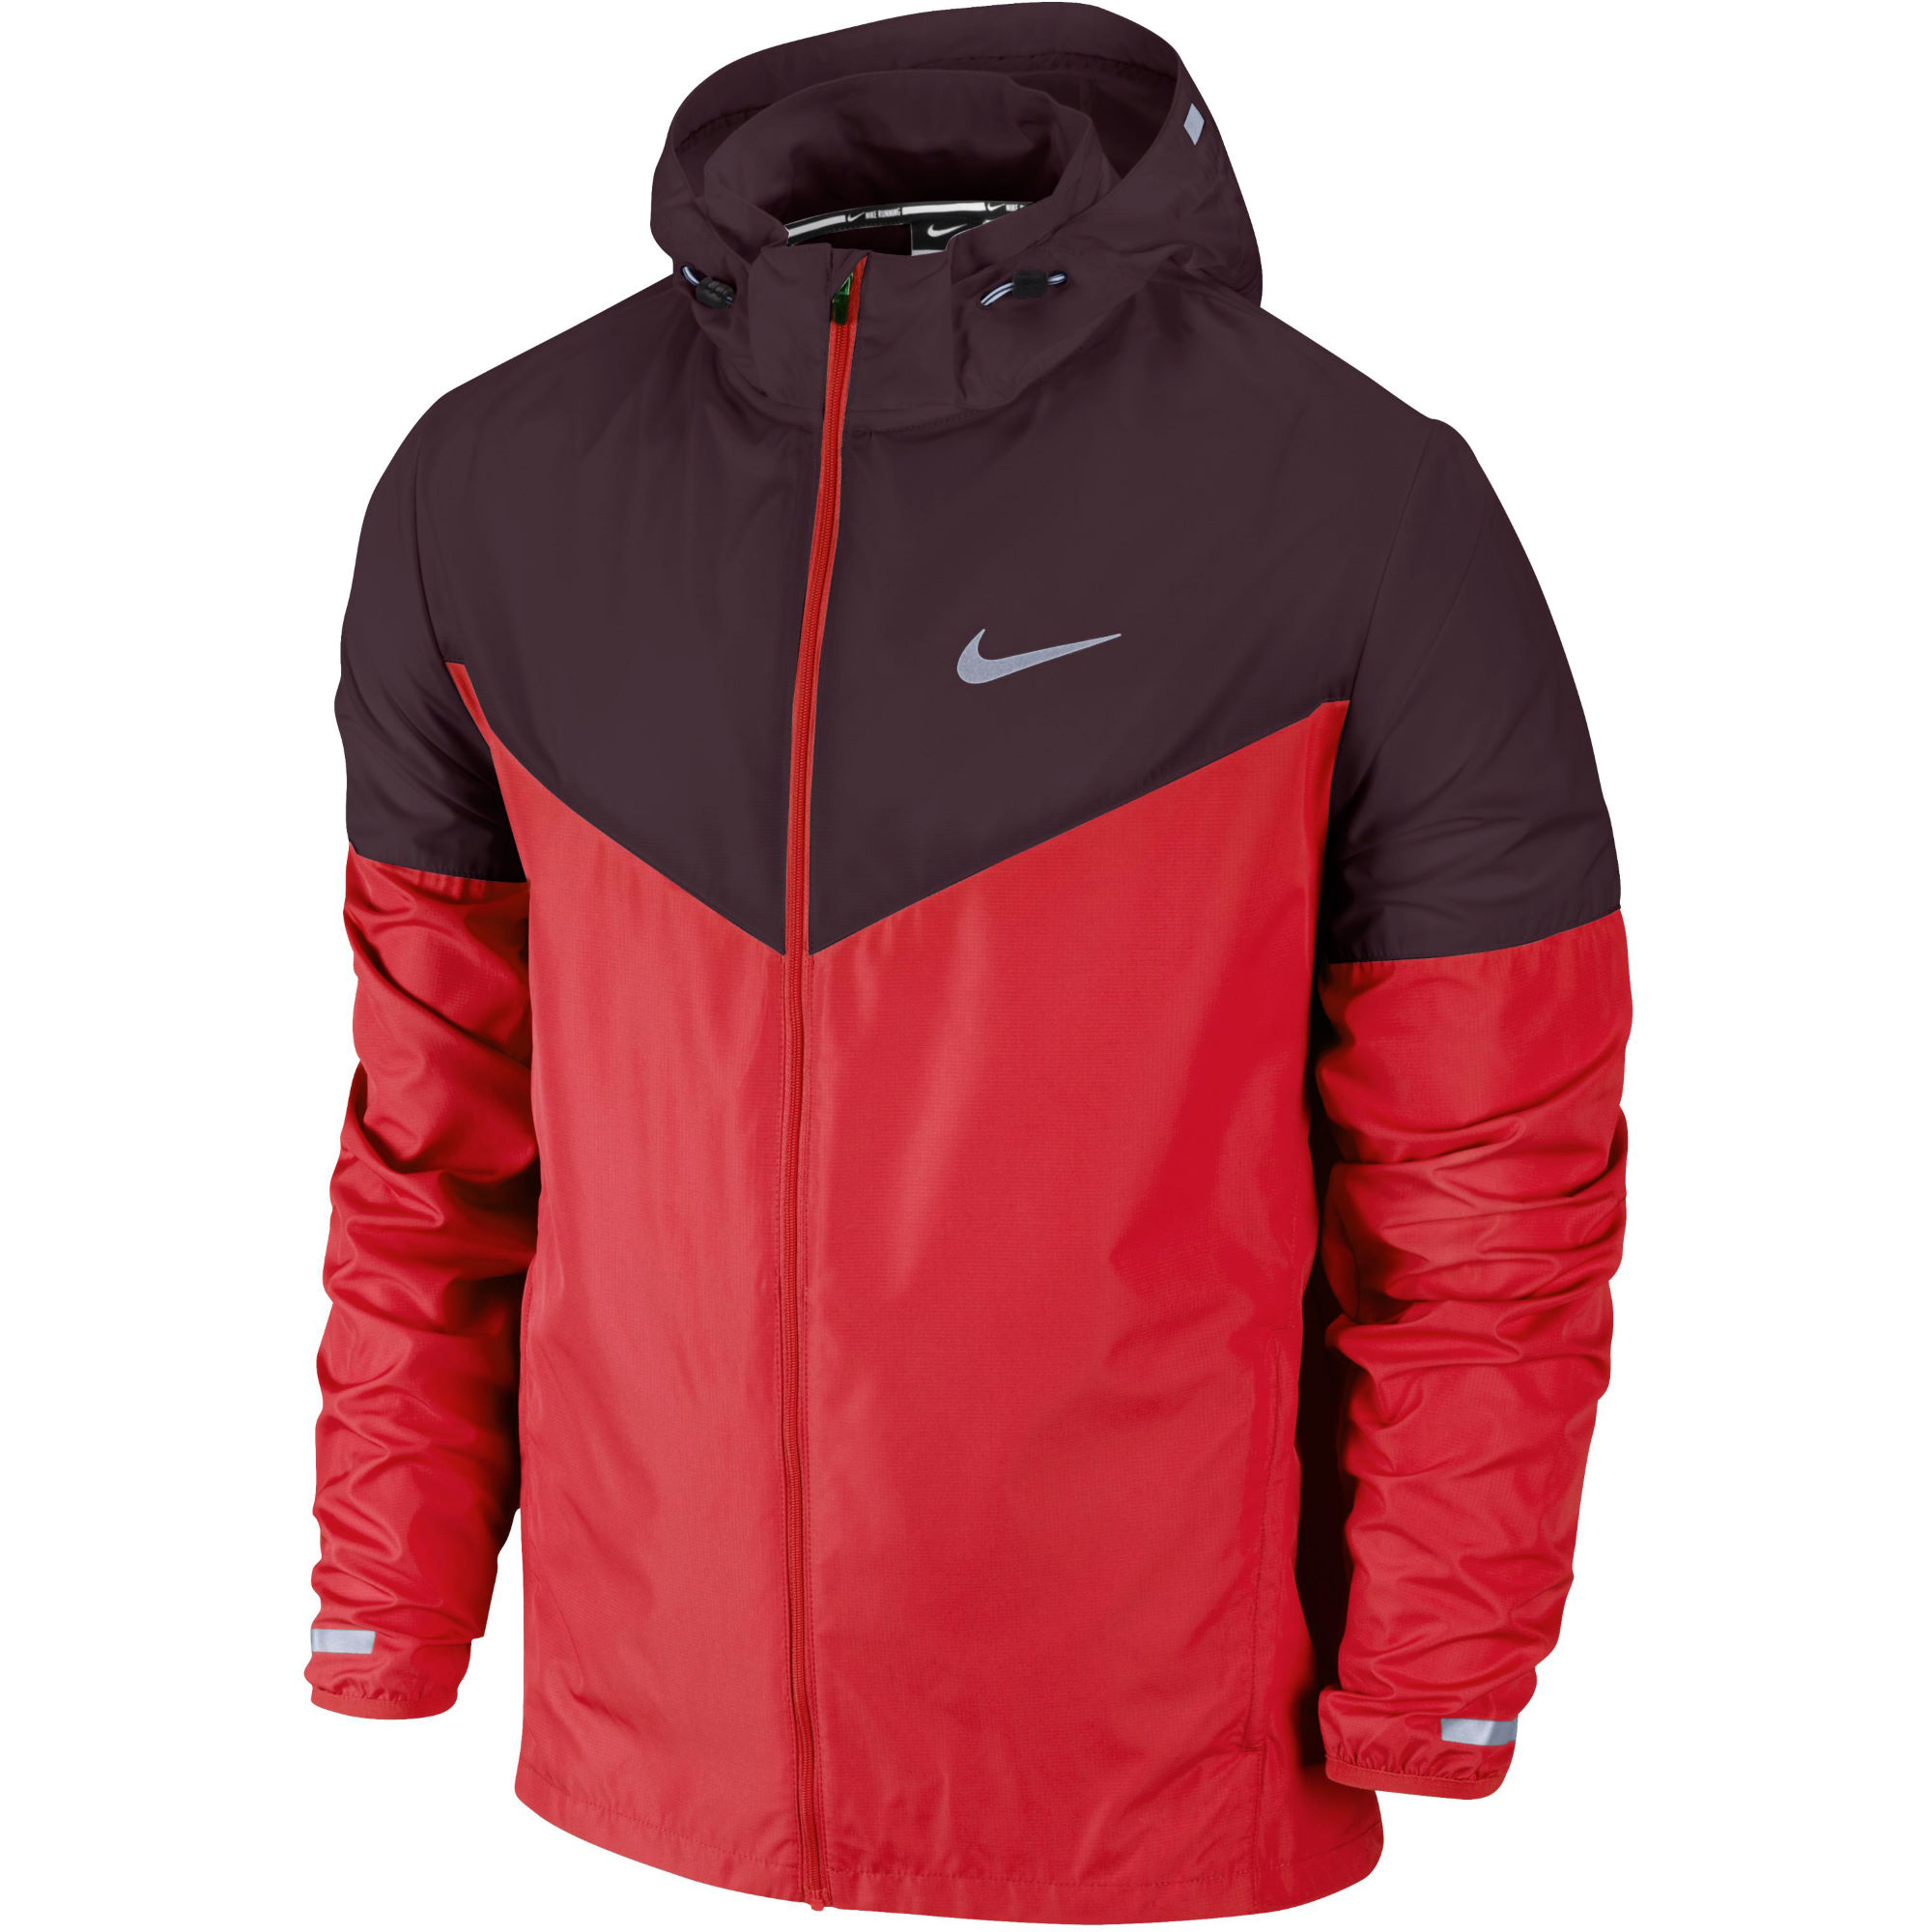 vestes de running coupe vent nike vapor jacket ho14 wiggle france. Black Bedroom Furniture Sets. Home Design Ideas